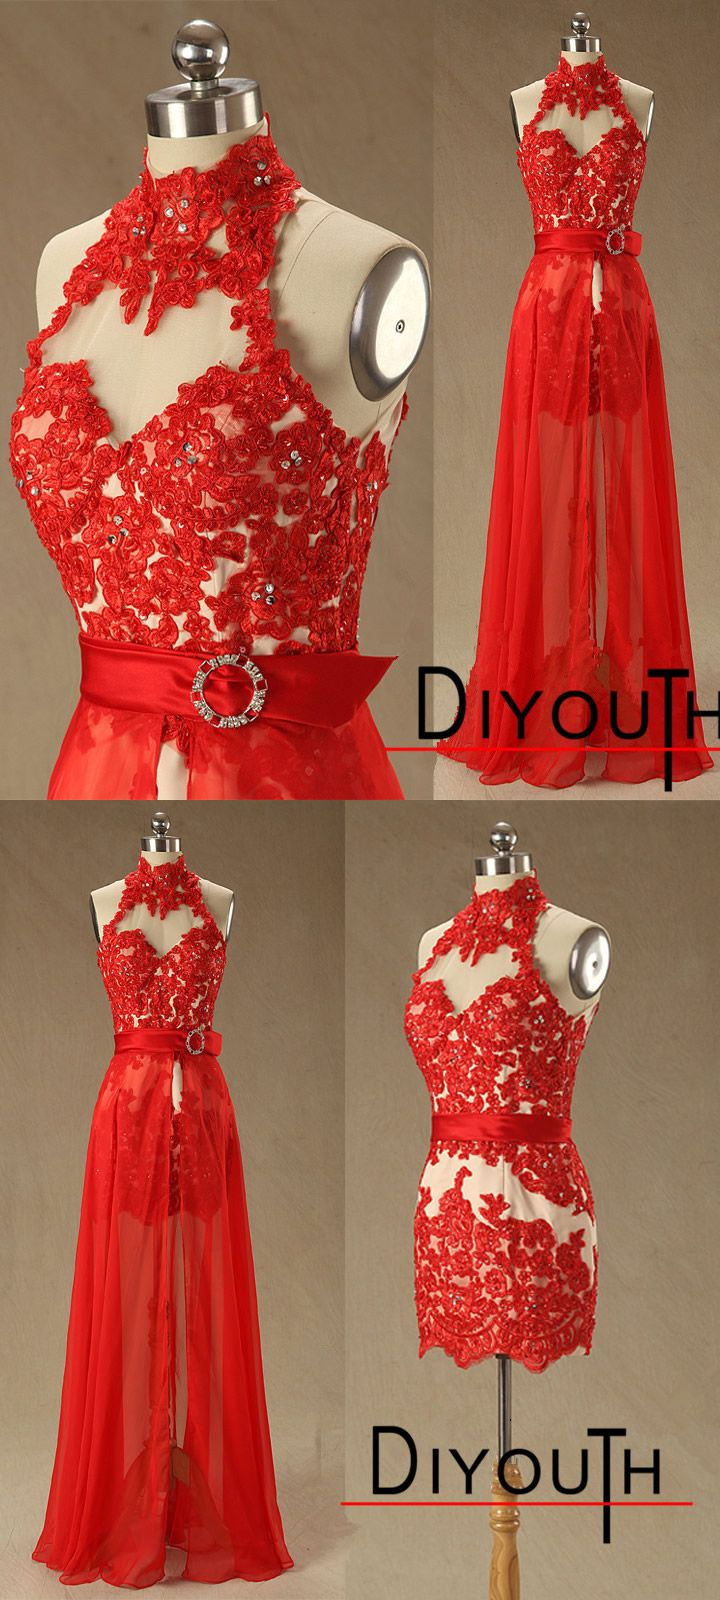 Diyouth high neck open keyhole back red lace short dress with